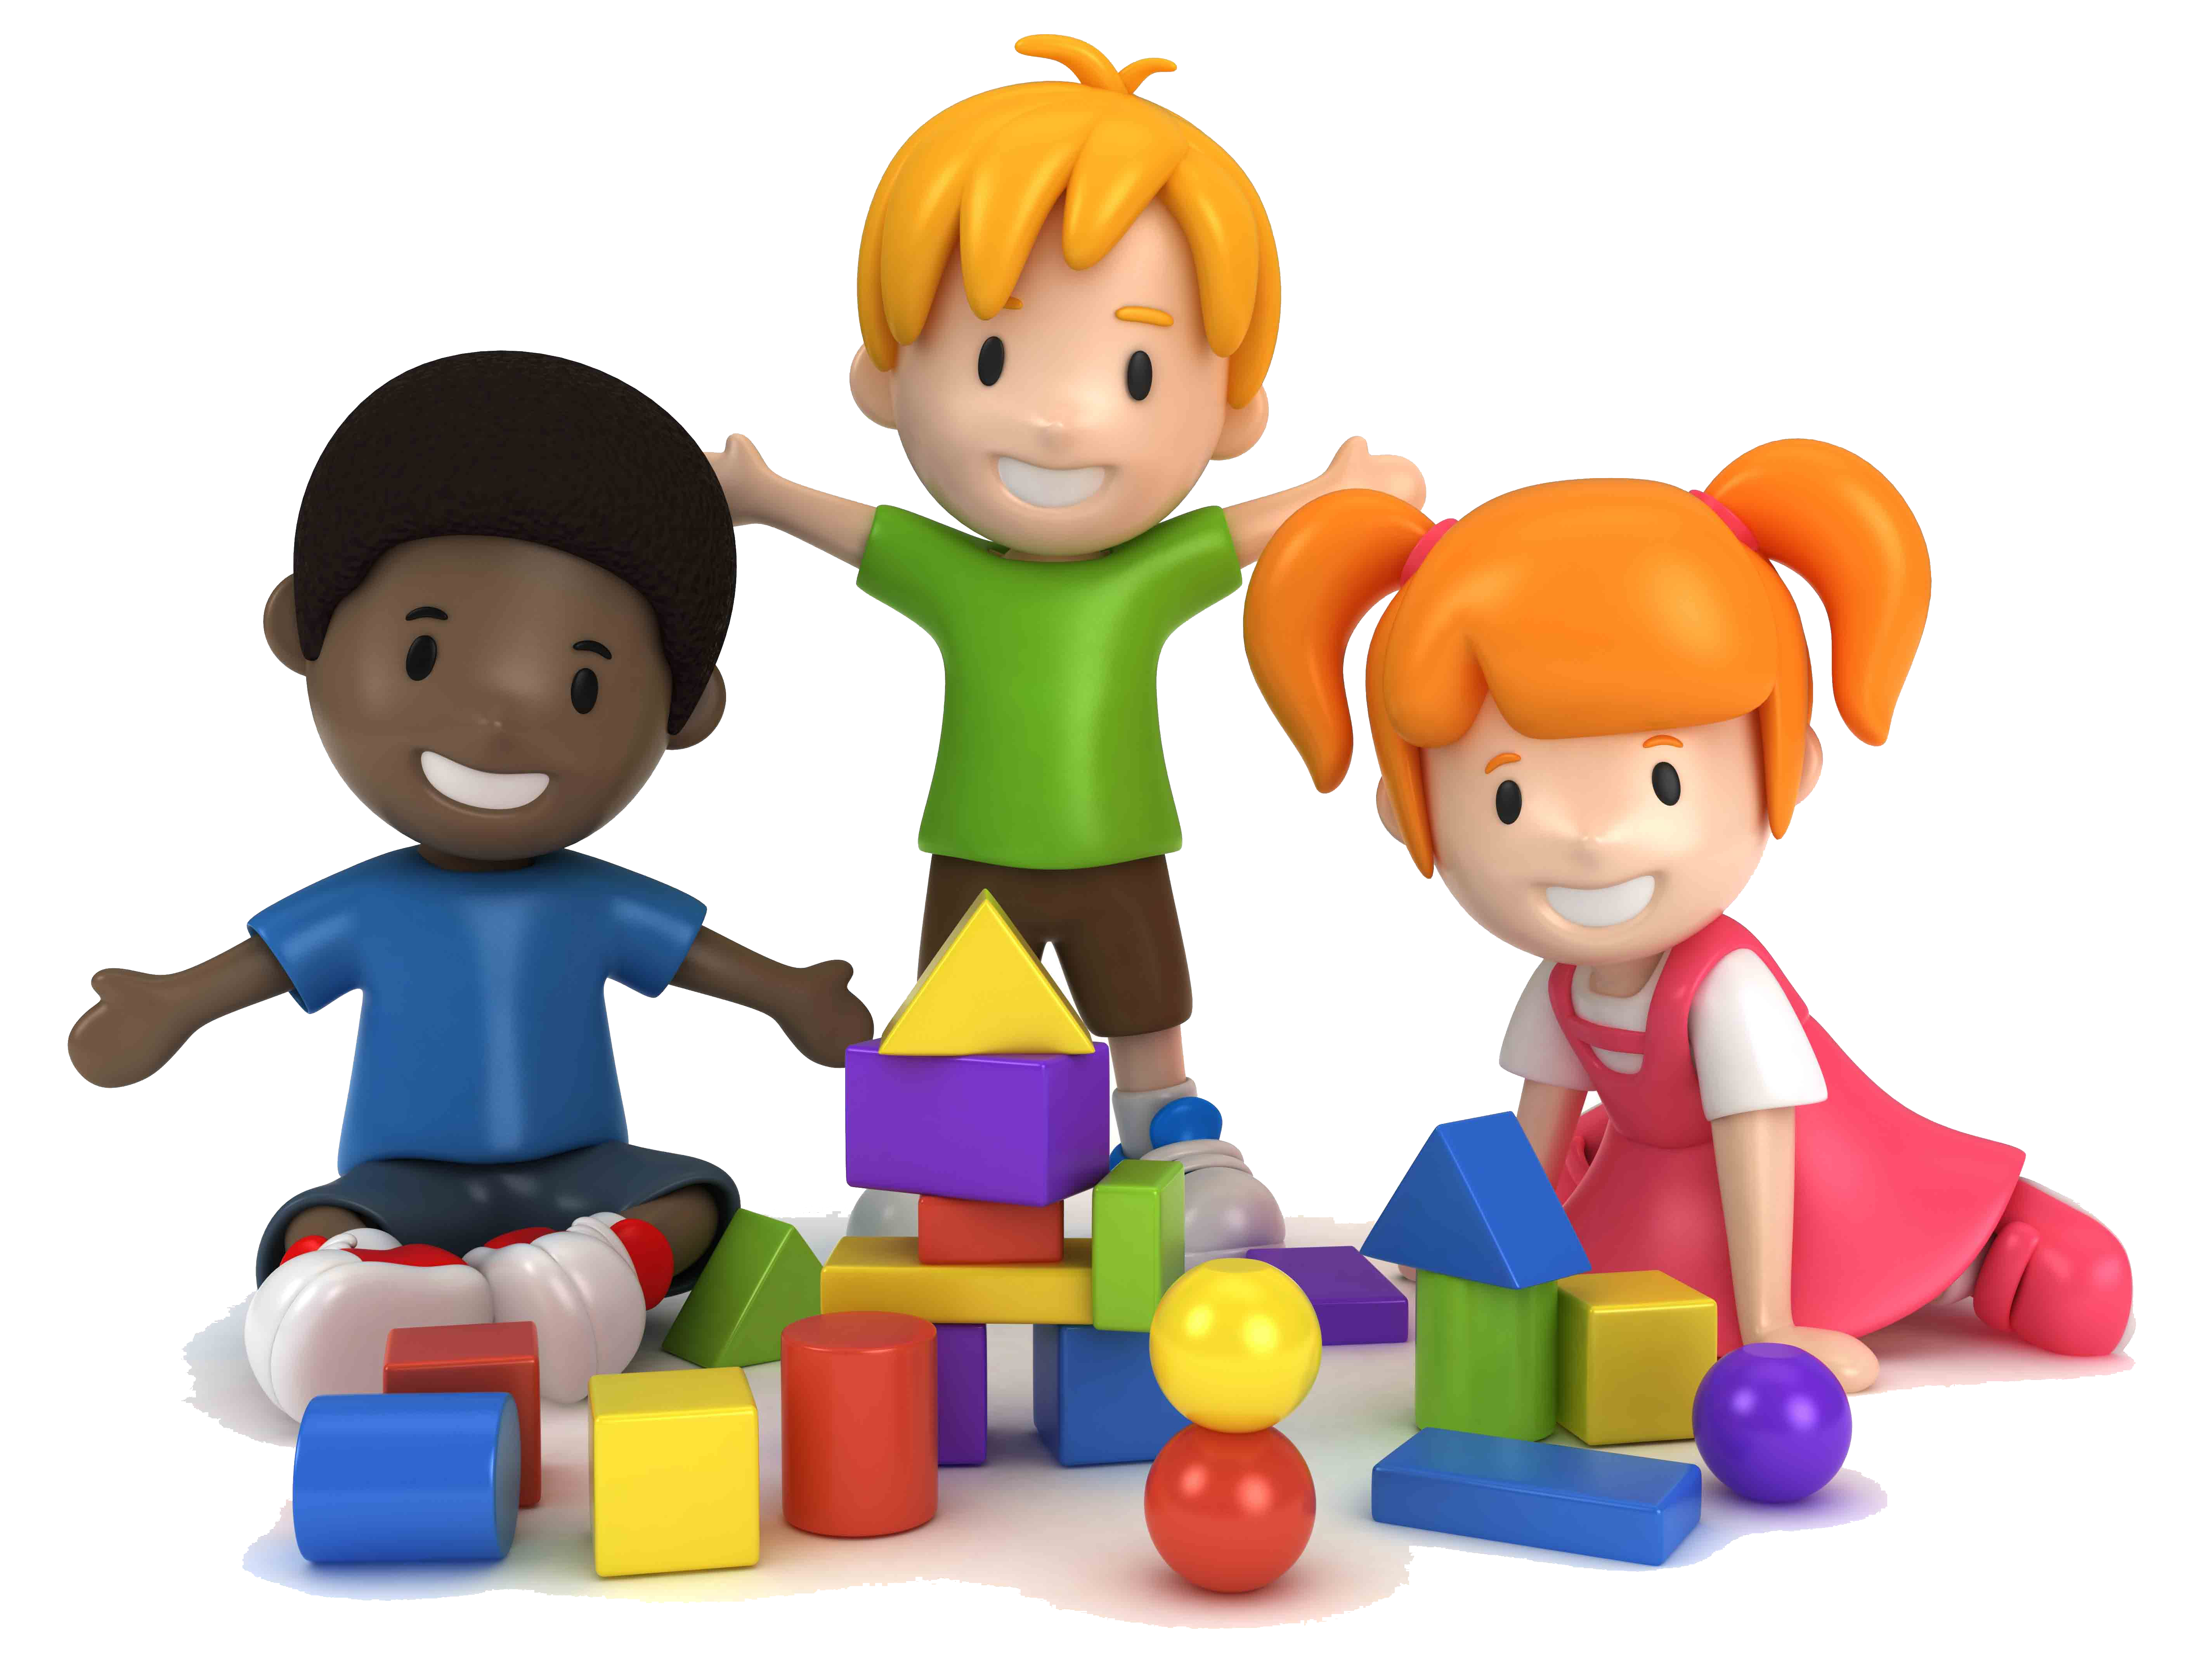 Legos clipart play. Download free png kids